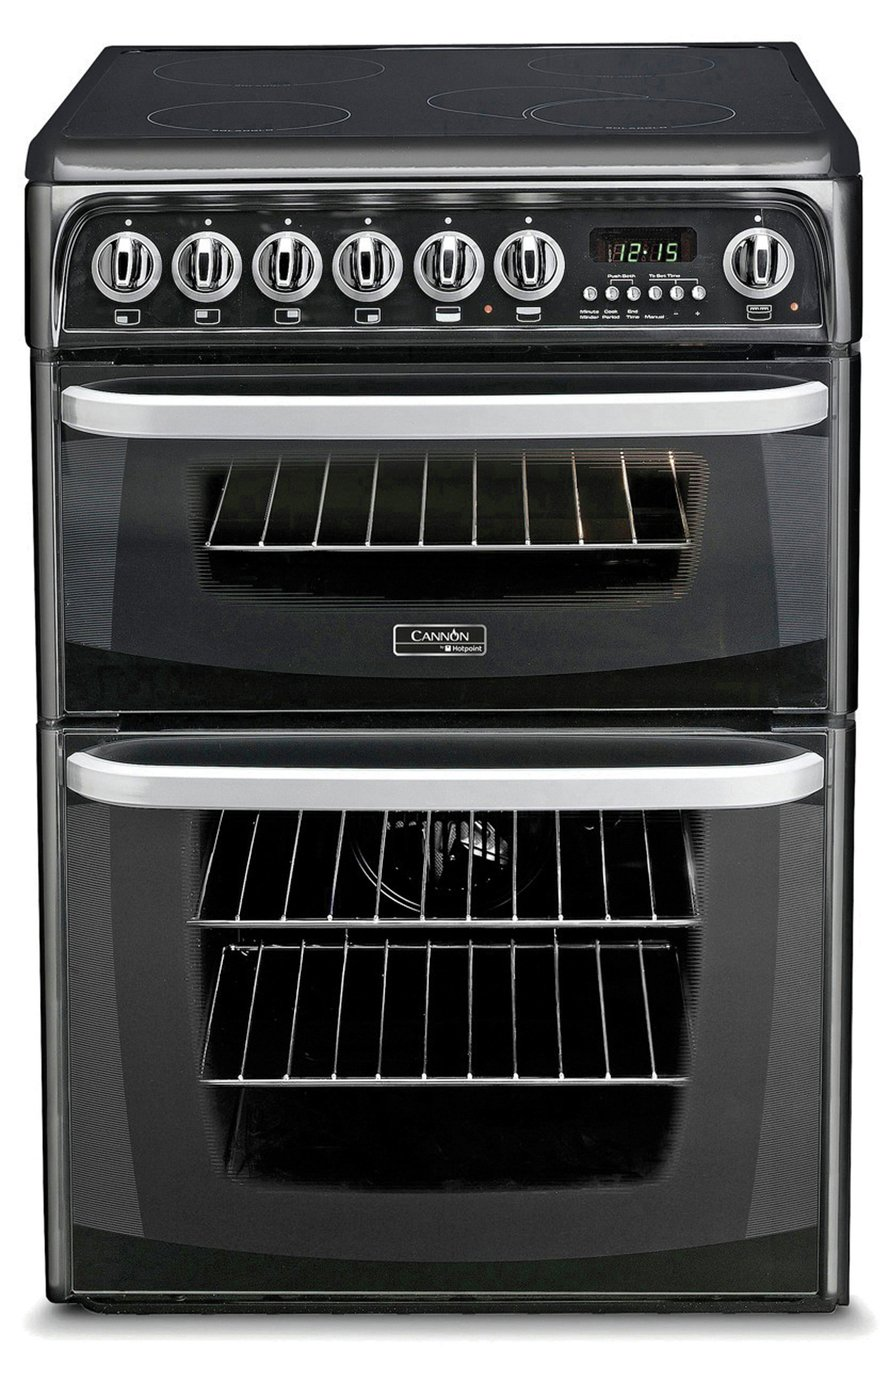 Hotpoint CH60EKKS Electric Cooker - Black from Hotpoint